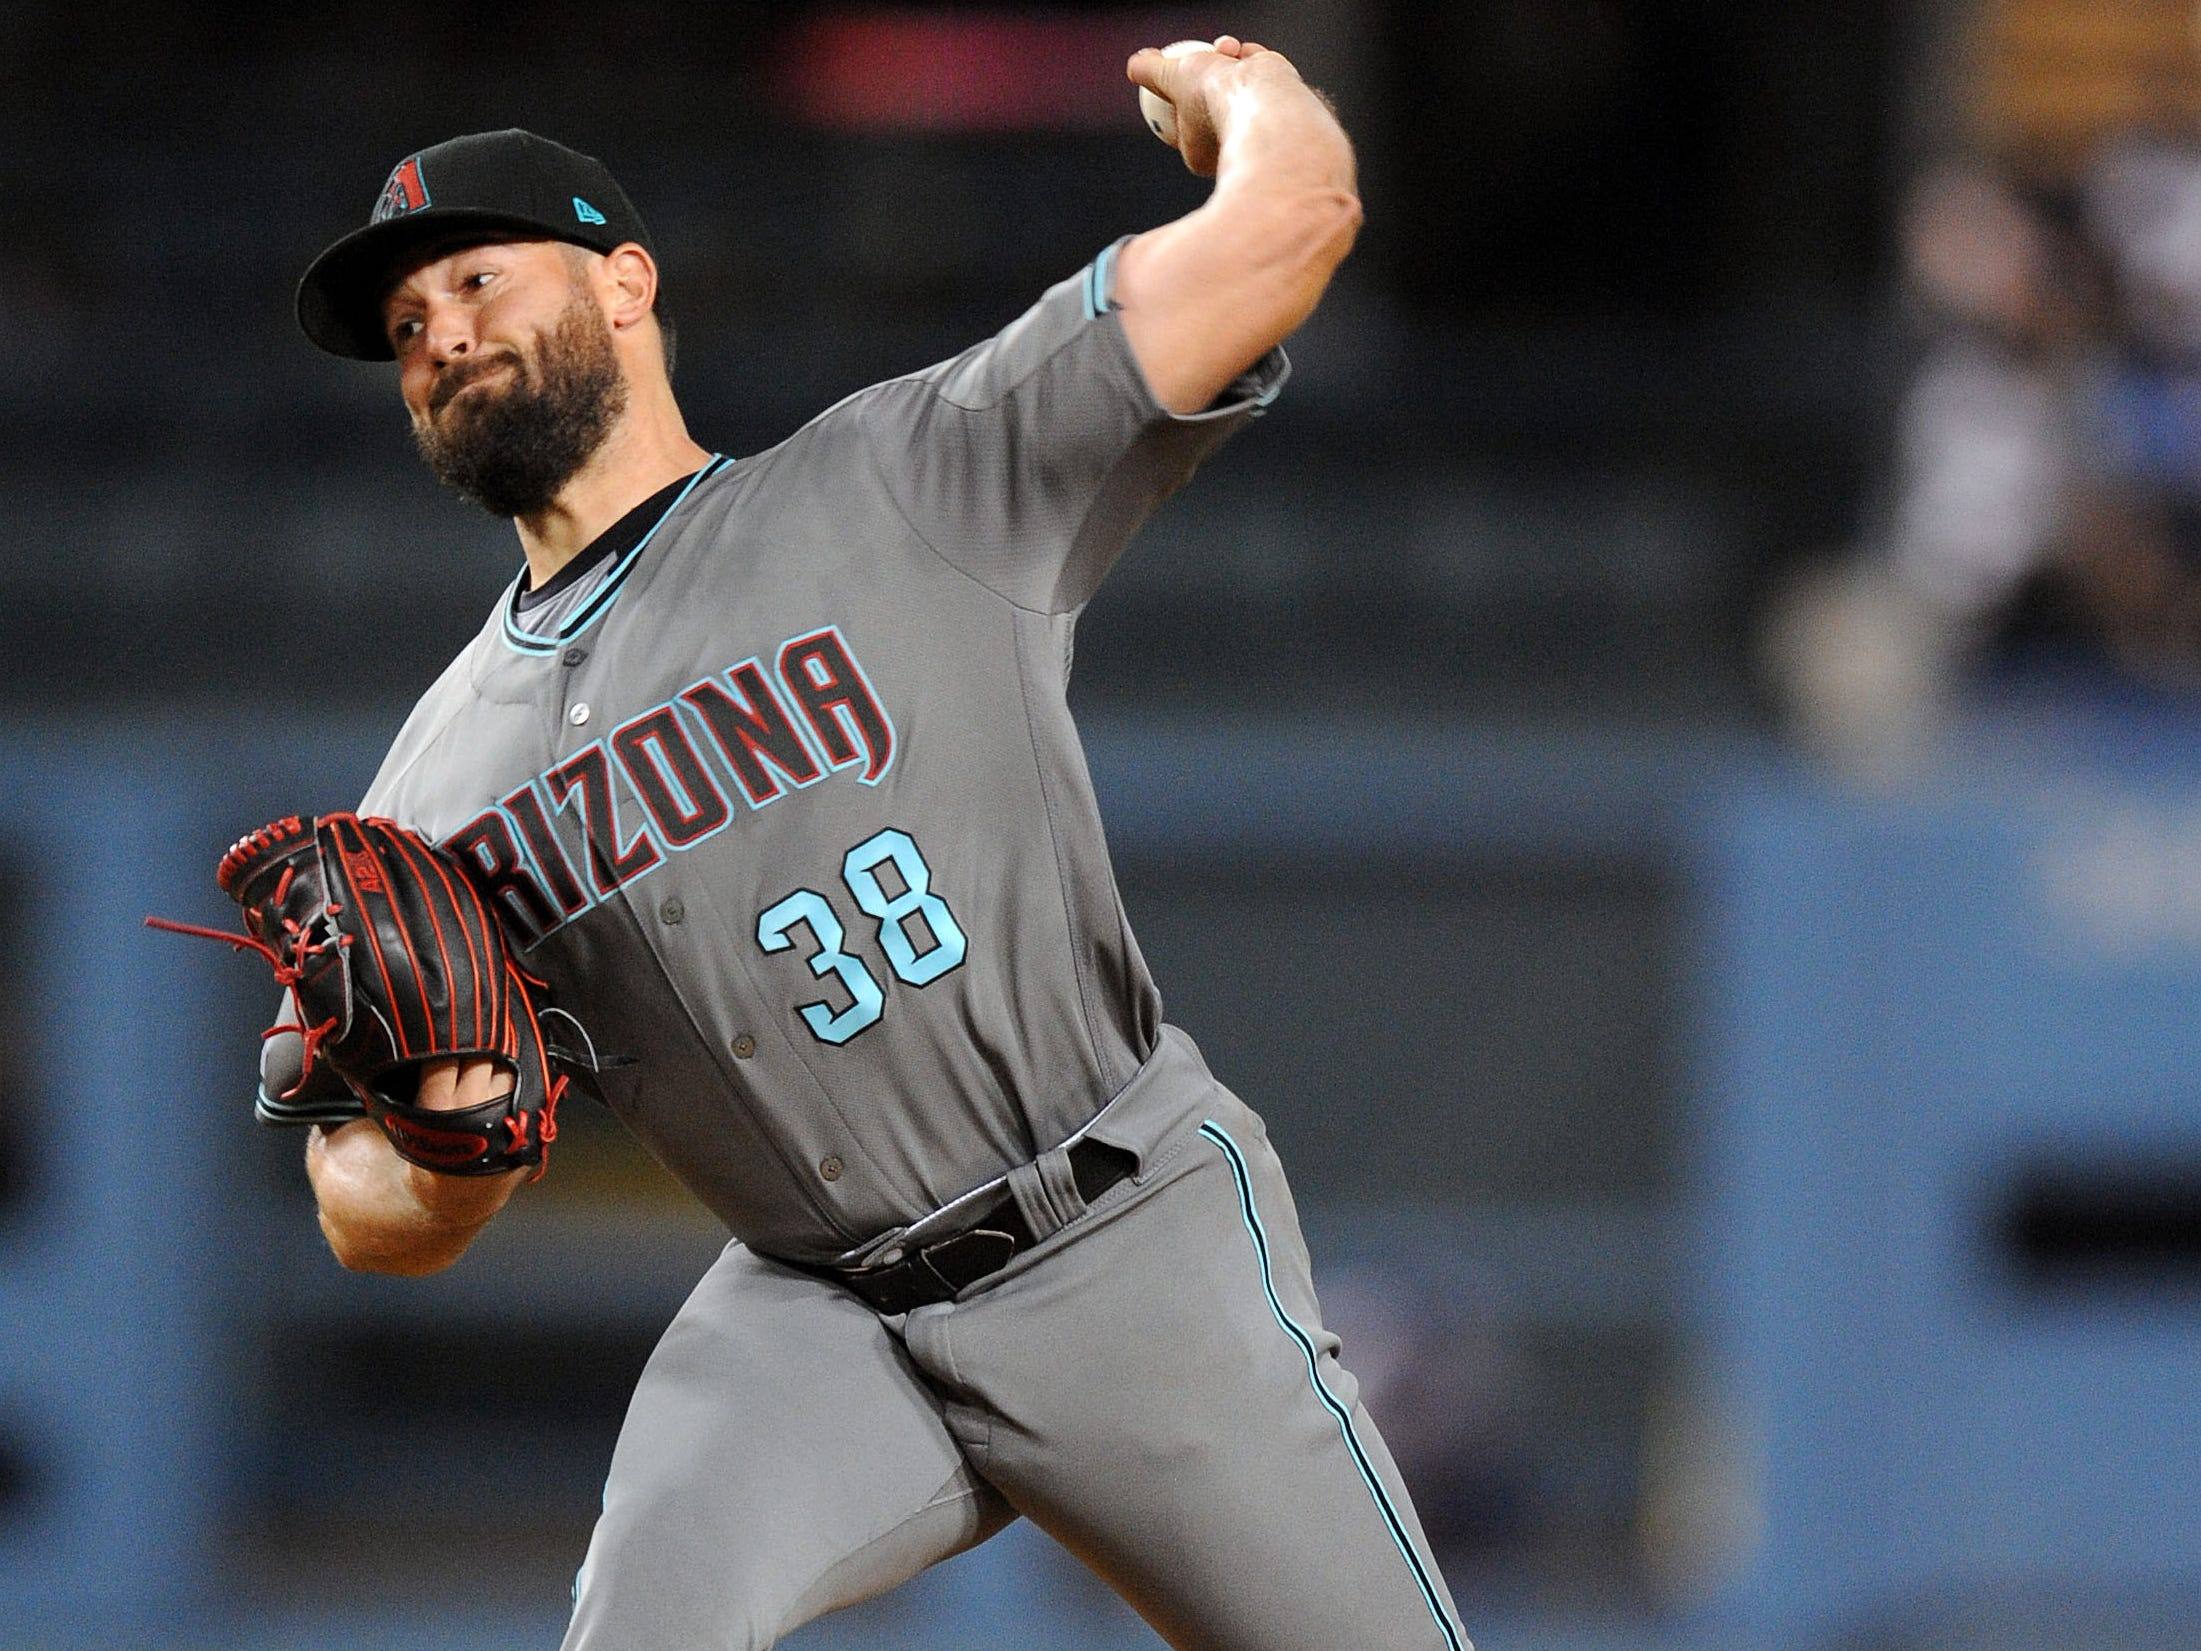 March 29, 2019; Los Angeles, CA, USA; Arizona Diamondbacks starting pitcher Robbie Ray (38) throws during the second inning against the Los Angeles Dodgers at Dodger Stadium.